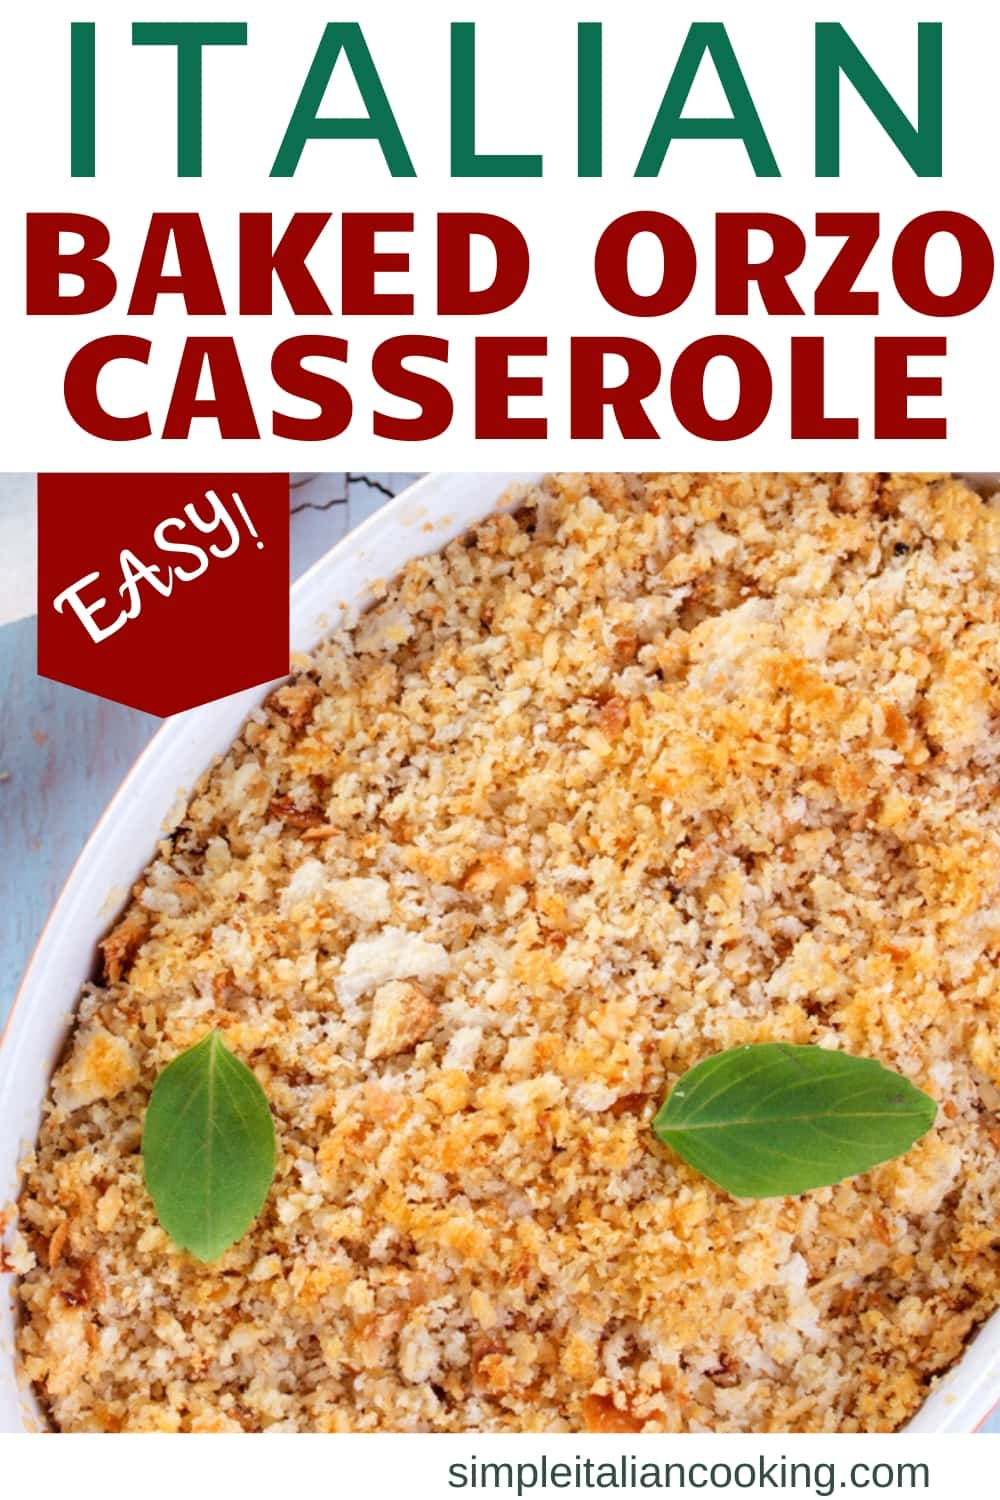 How to Make a Delicious Baked Orzo Italiano